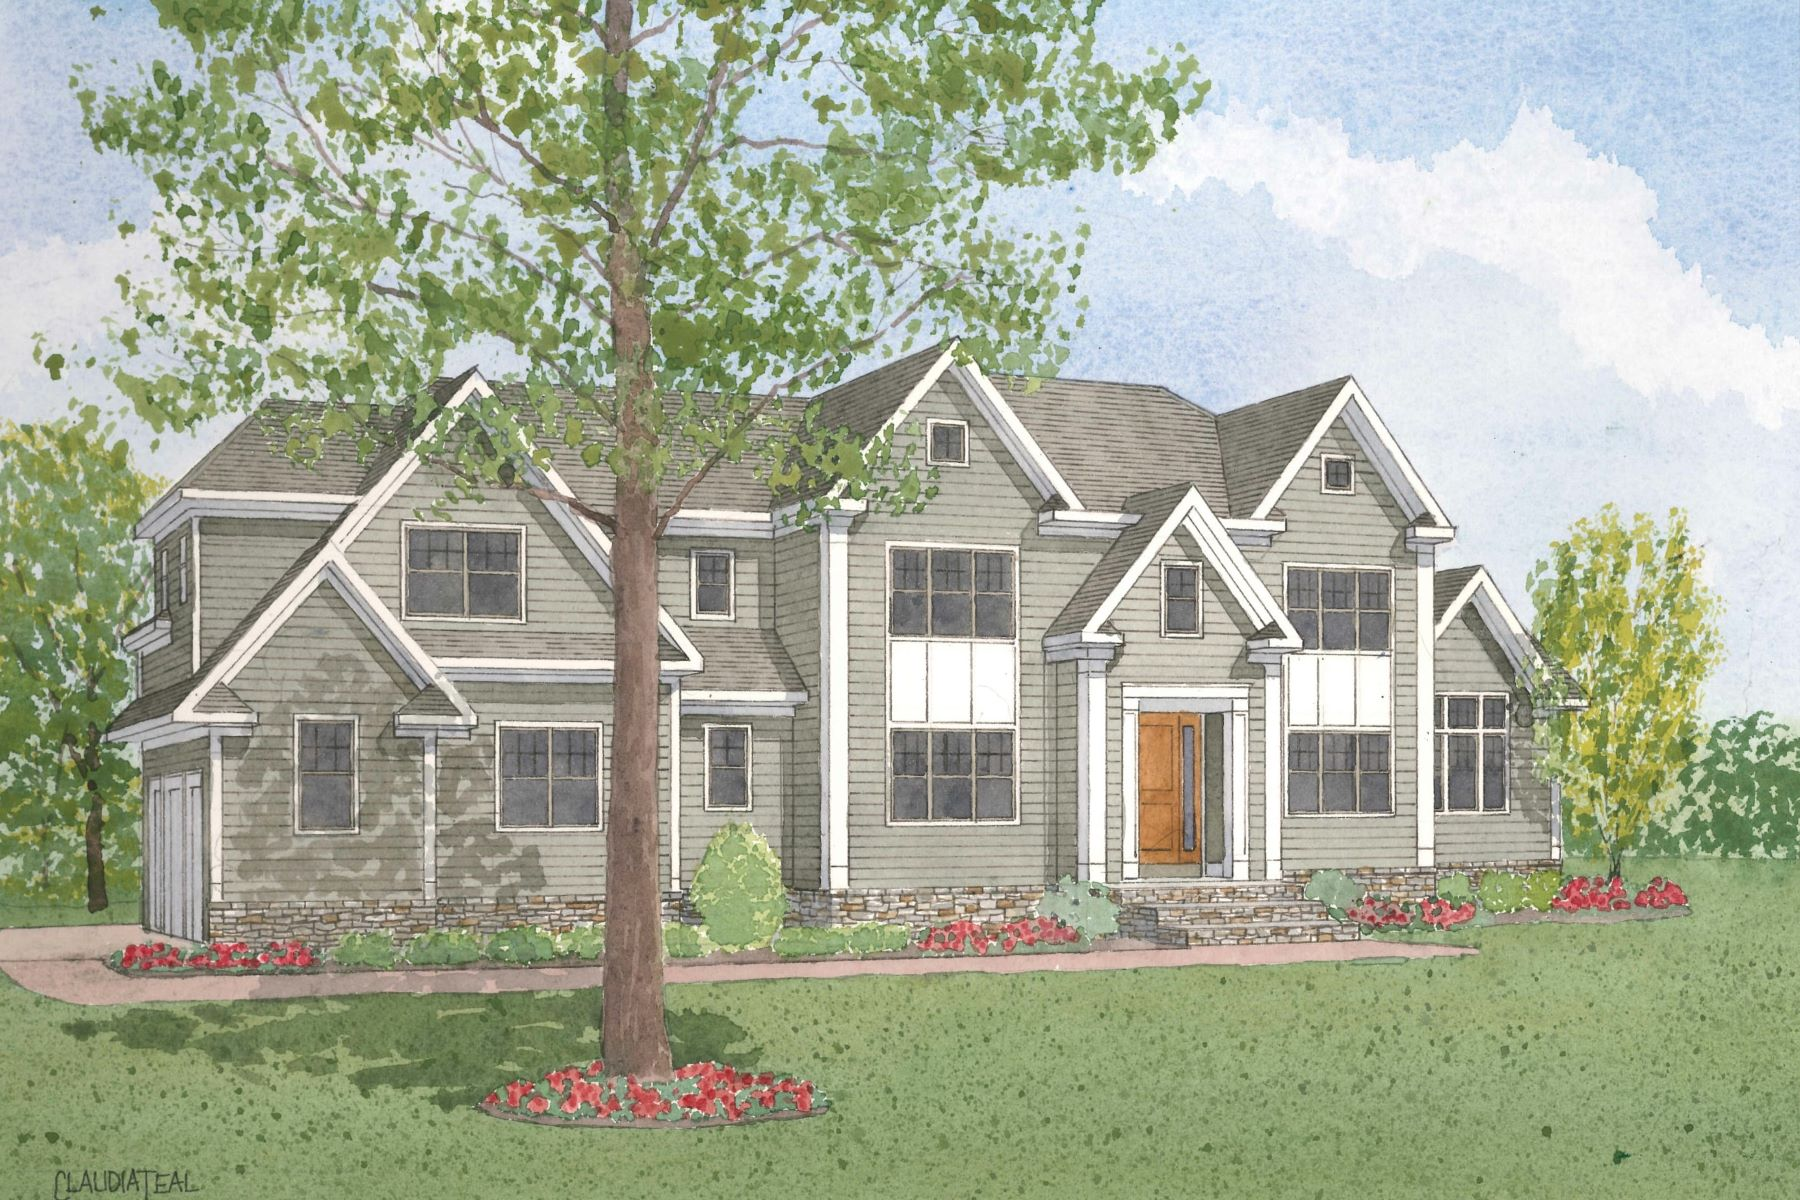 Single Family Home for Sale at All New Construction By Rockwell Custom Homes - Hopewell Township 1 Silvers Court Pennington, 08534 United States